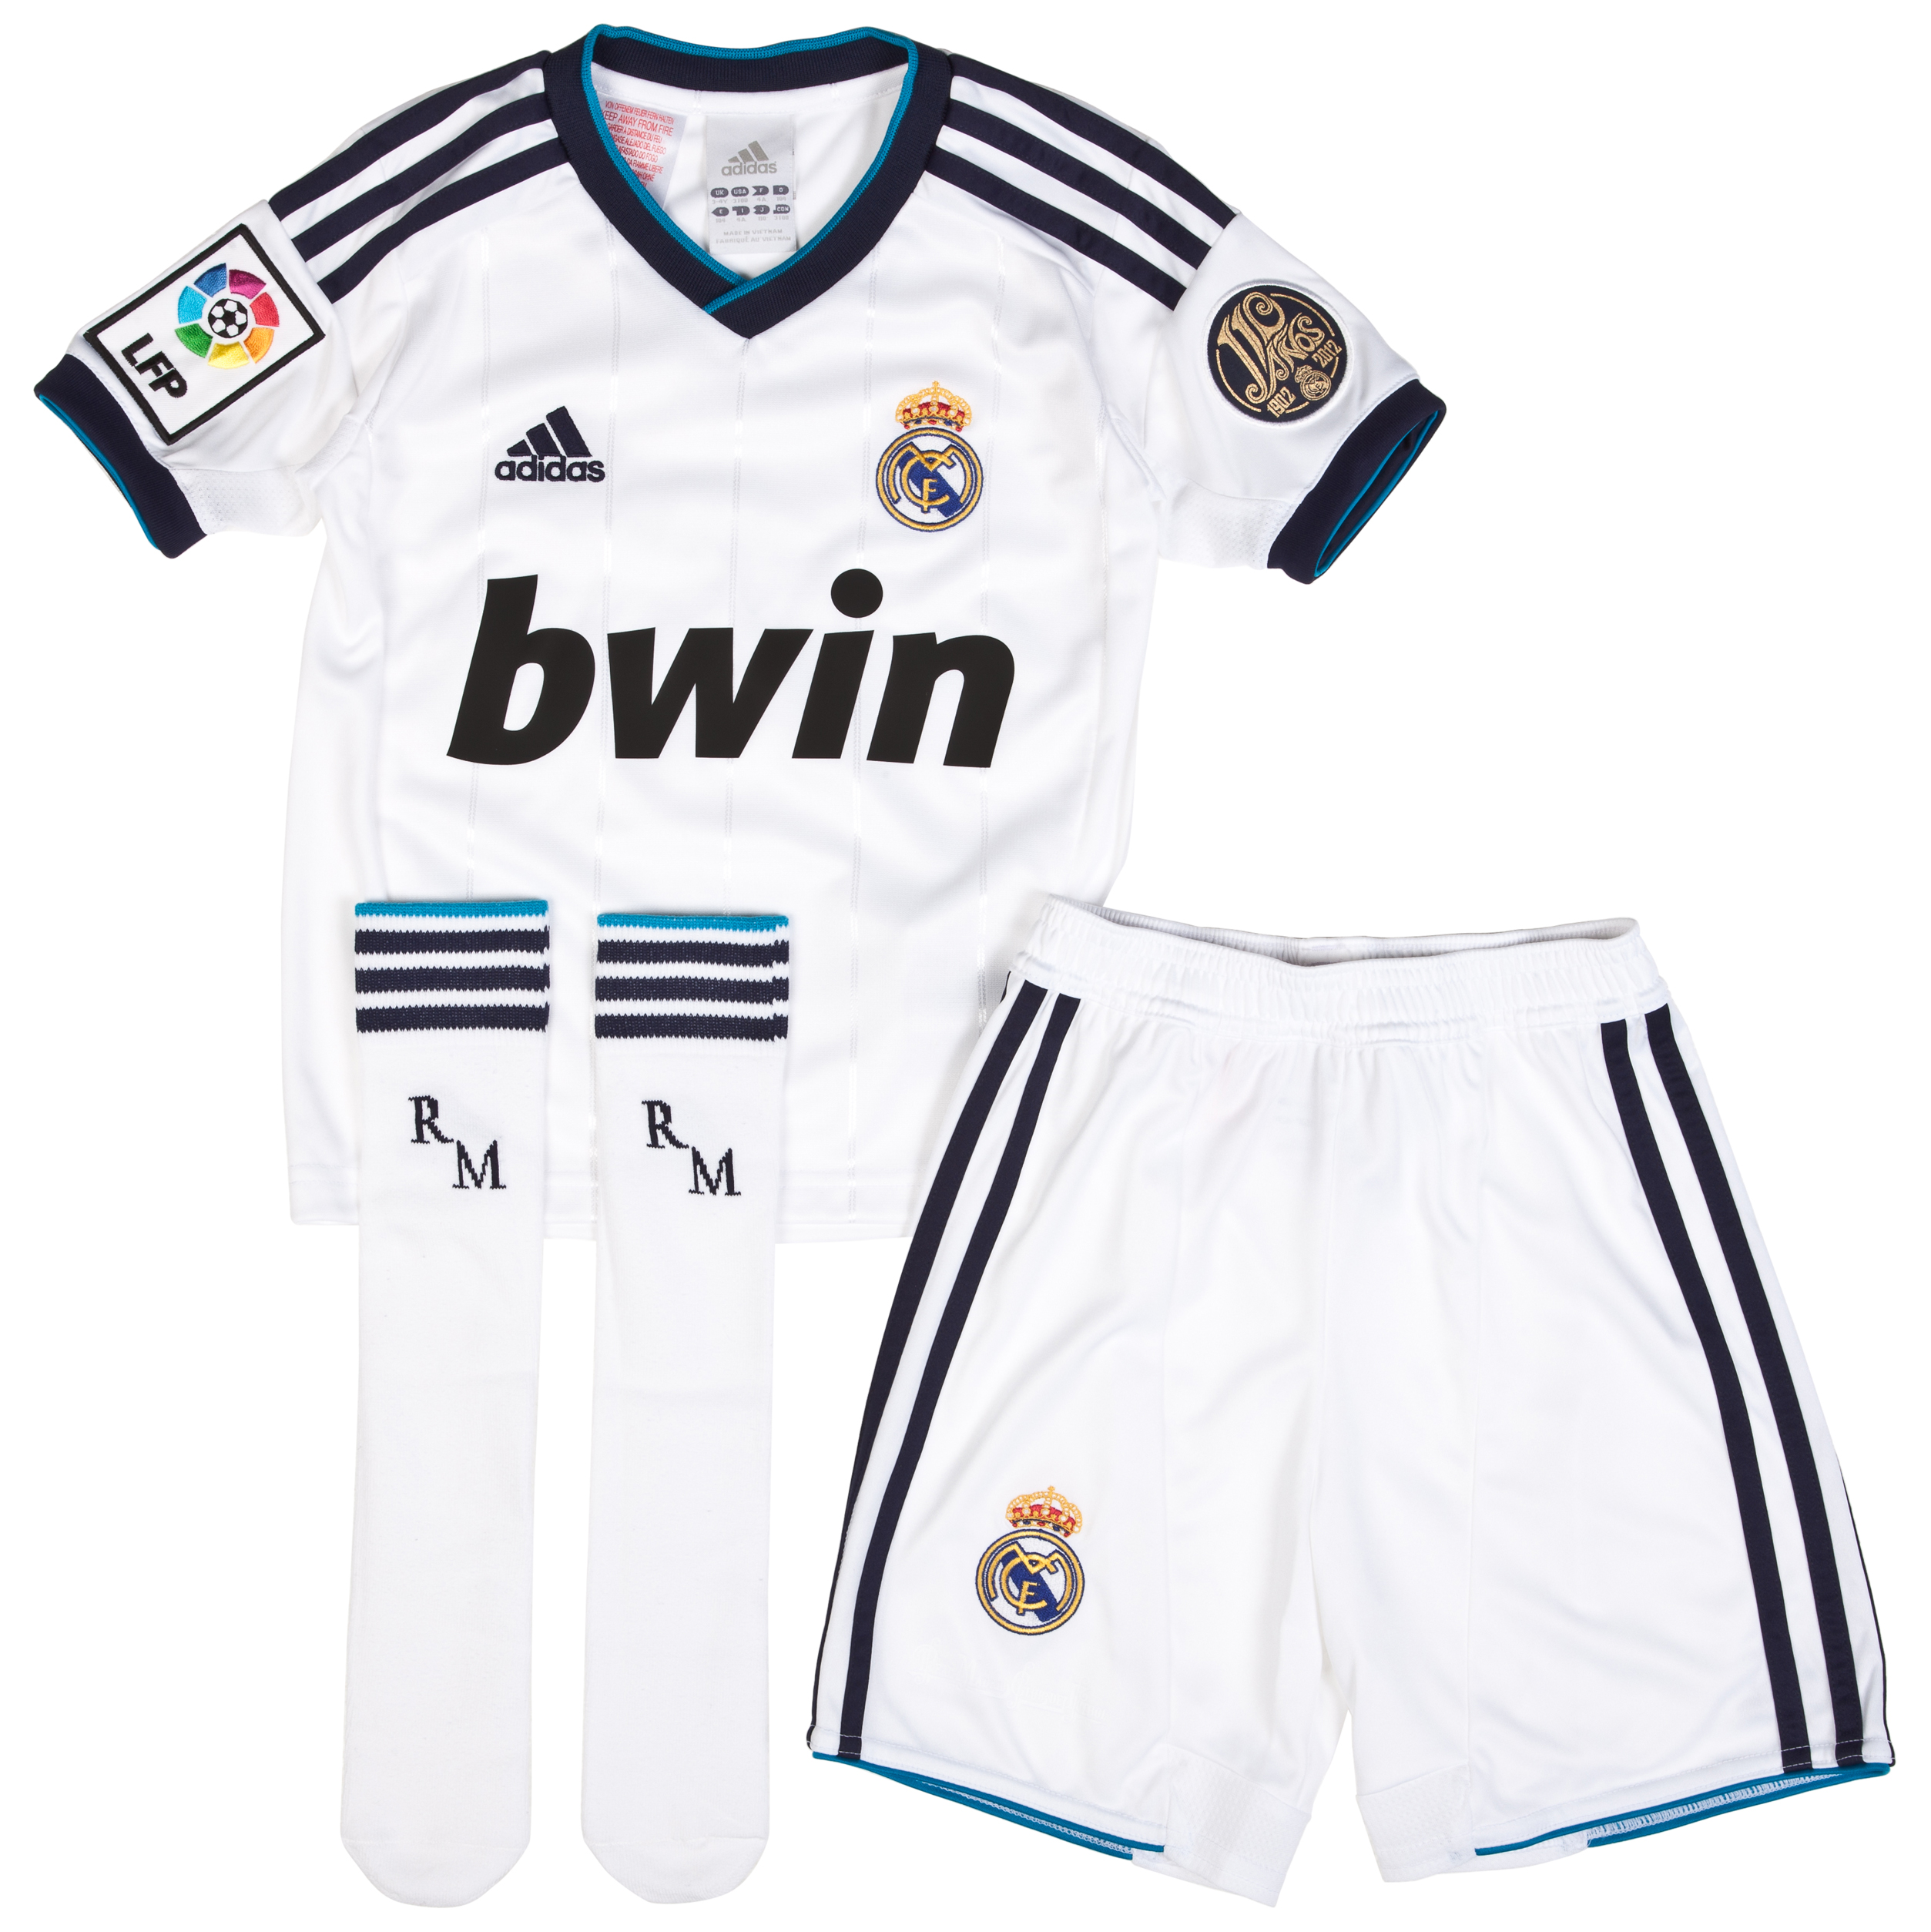 Buy Real Madrid Home Mini Kit 2012/13